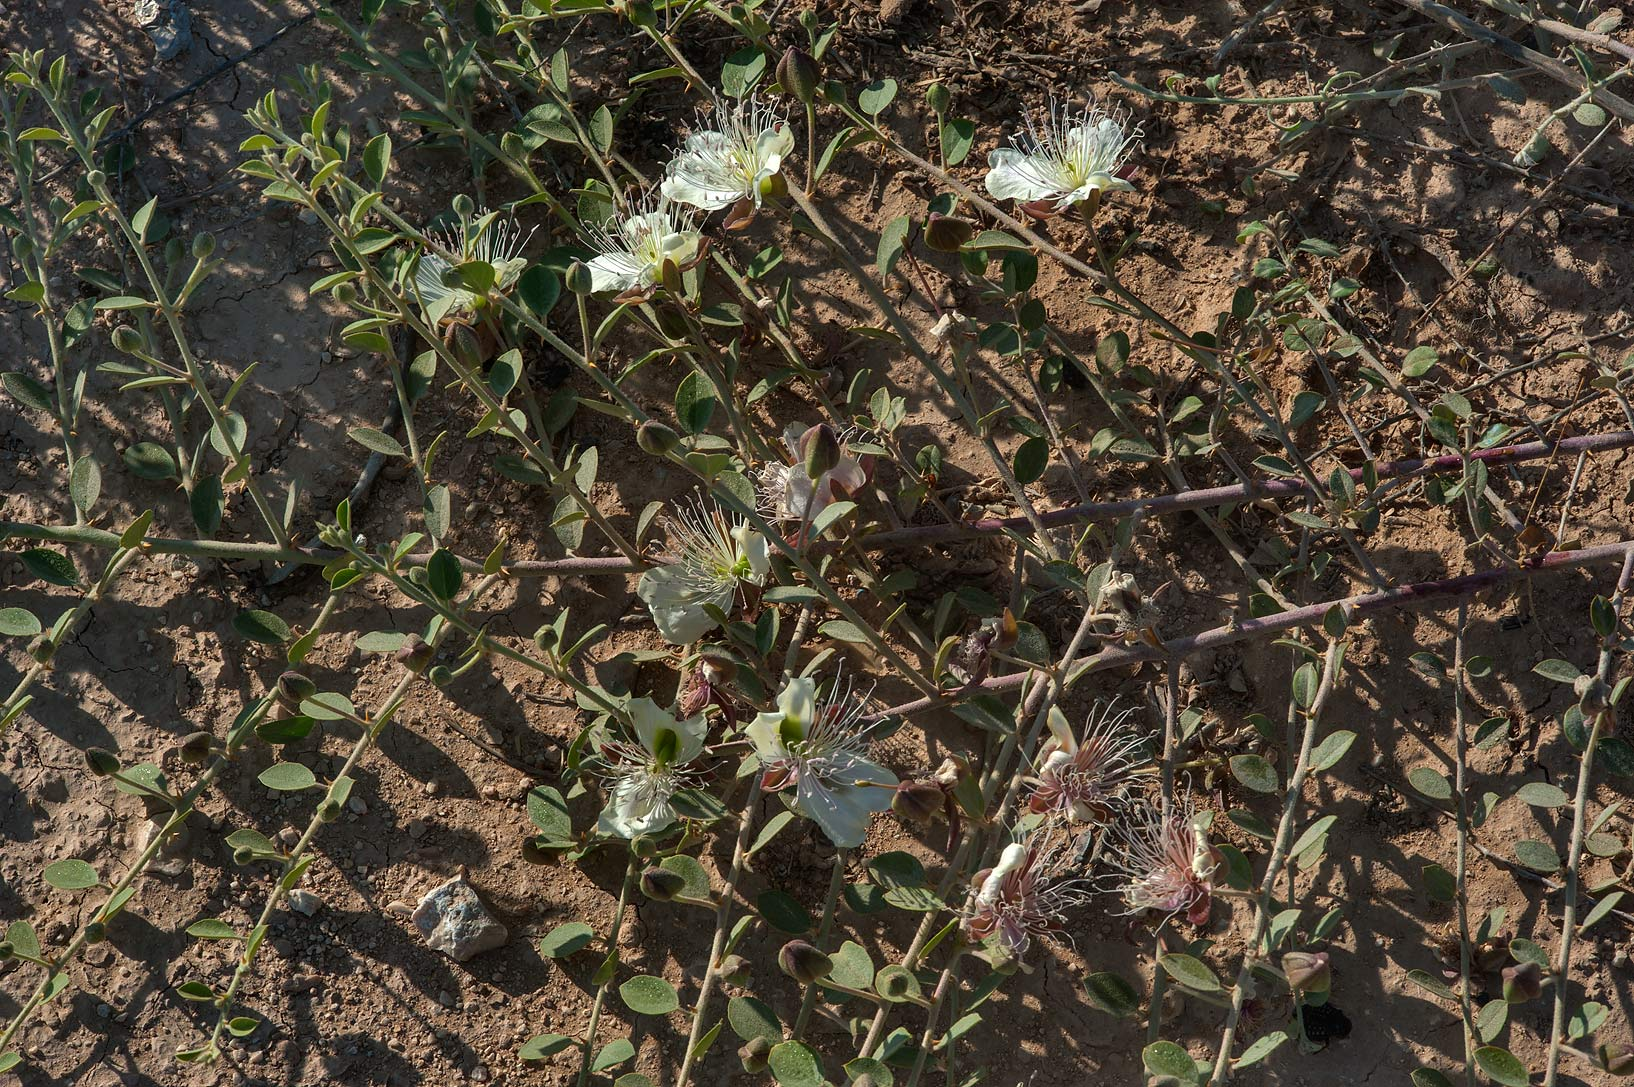 Thorny bush of Caper plant (Capparis spinosa) in...Bin Husayn near Simaisma. Qatar